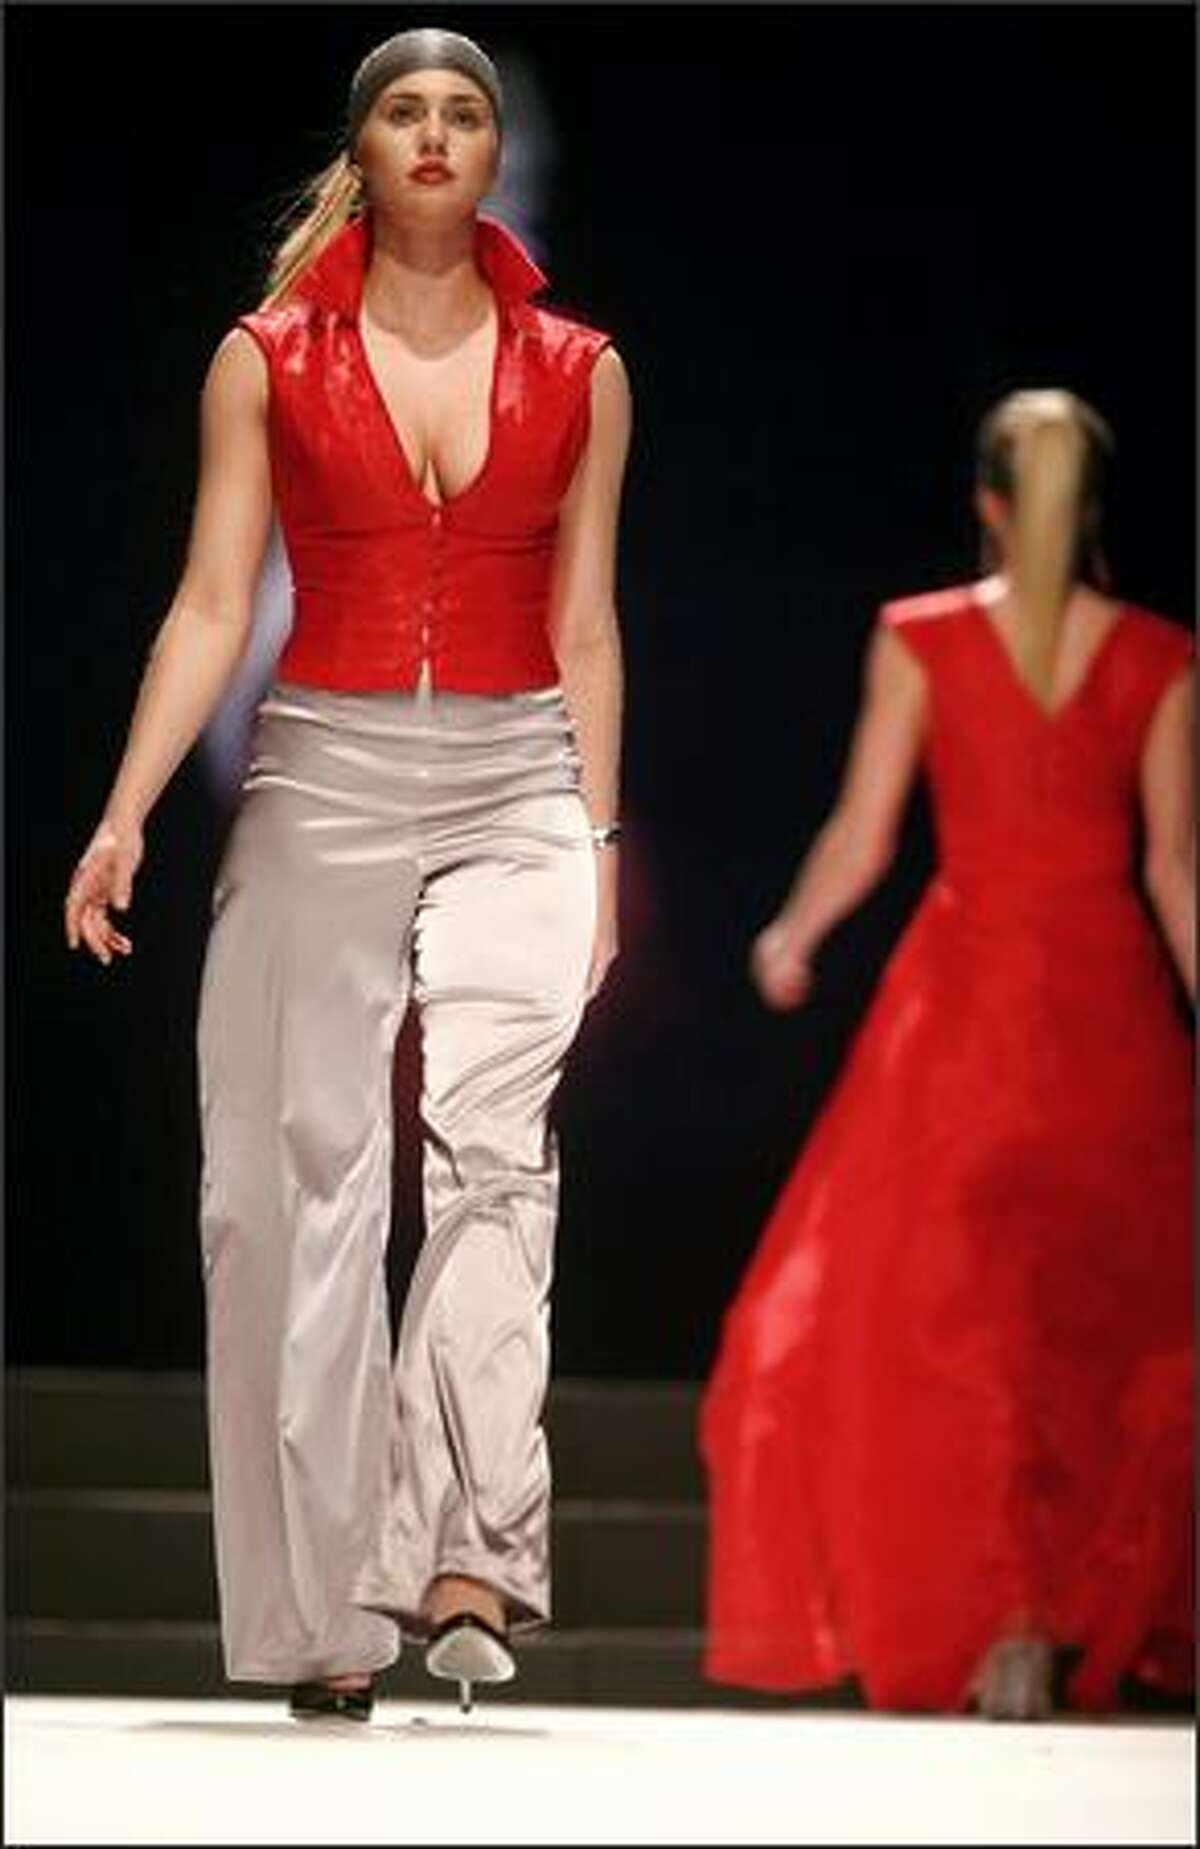 Model Andrea VanLaar walks the runway.